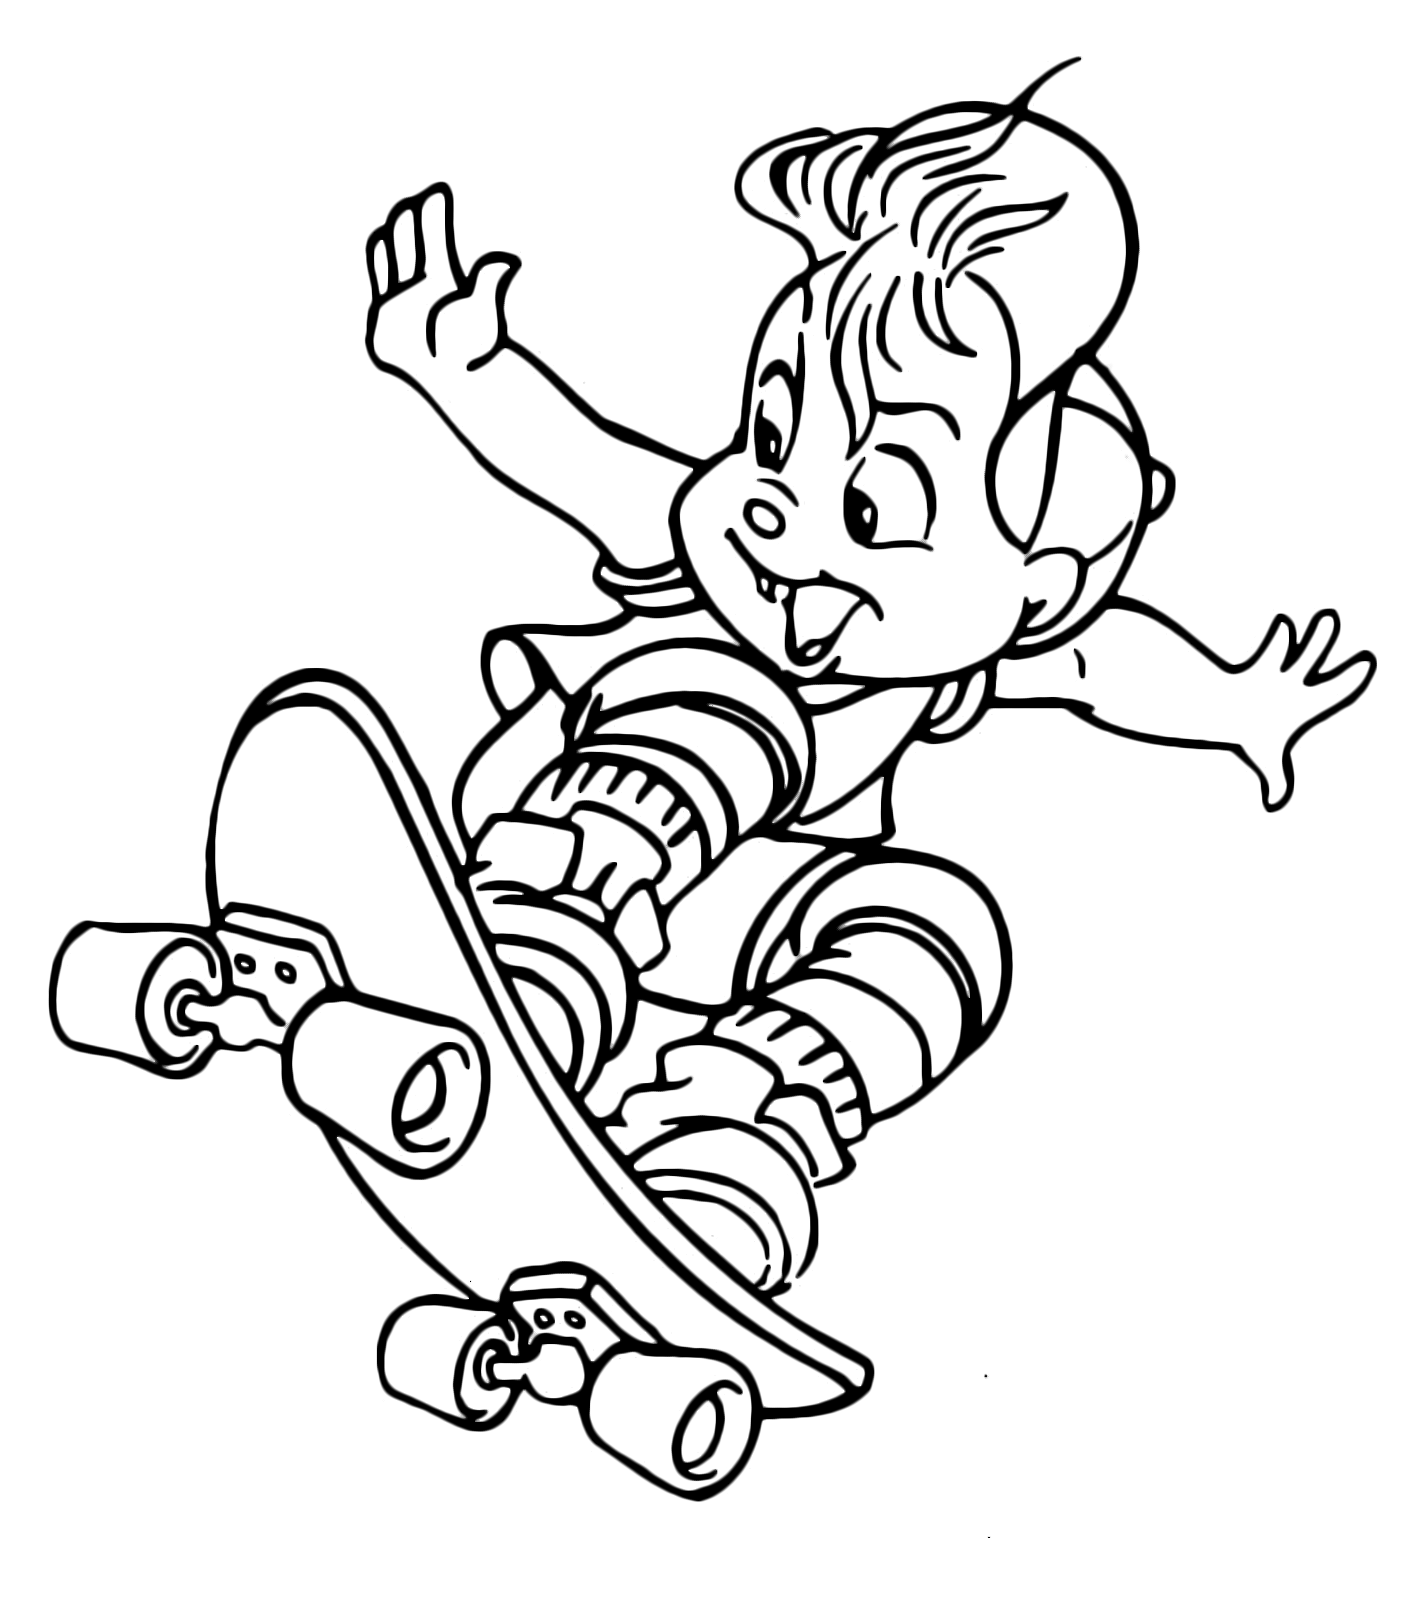 Alvin And The Chipmunks Alvin Jumping With Skateboard